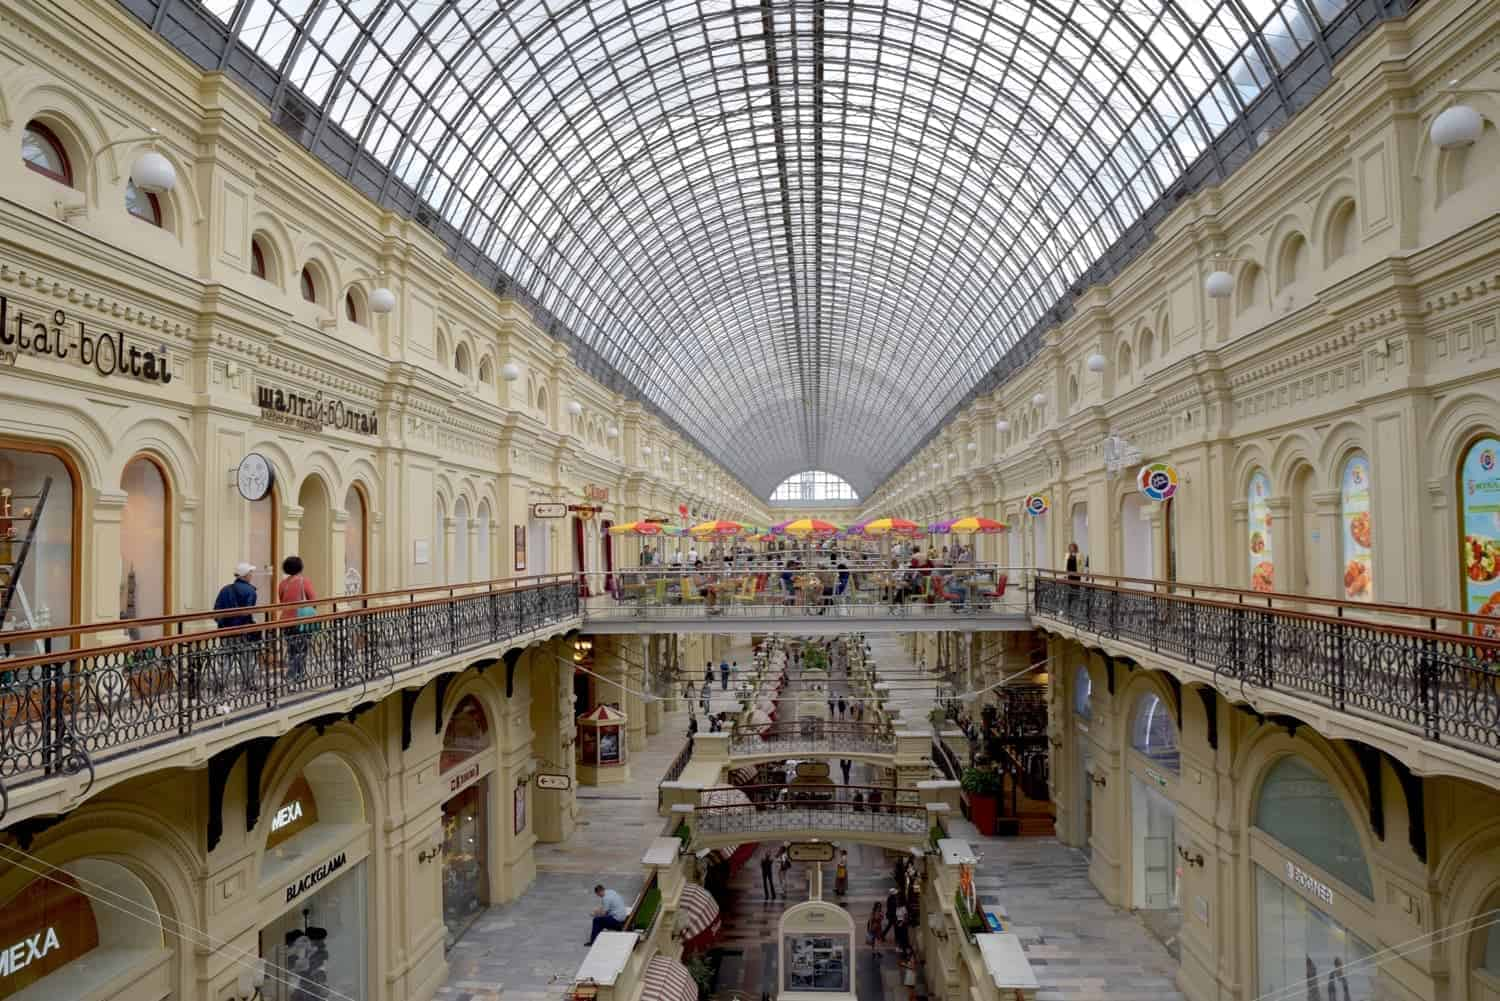 Inside GUM Department Store Russia with 2 levels of shopping in this ornate bulding. The glass domed roof tops the GUM department store one of the most famous places in russia